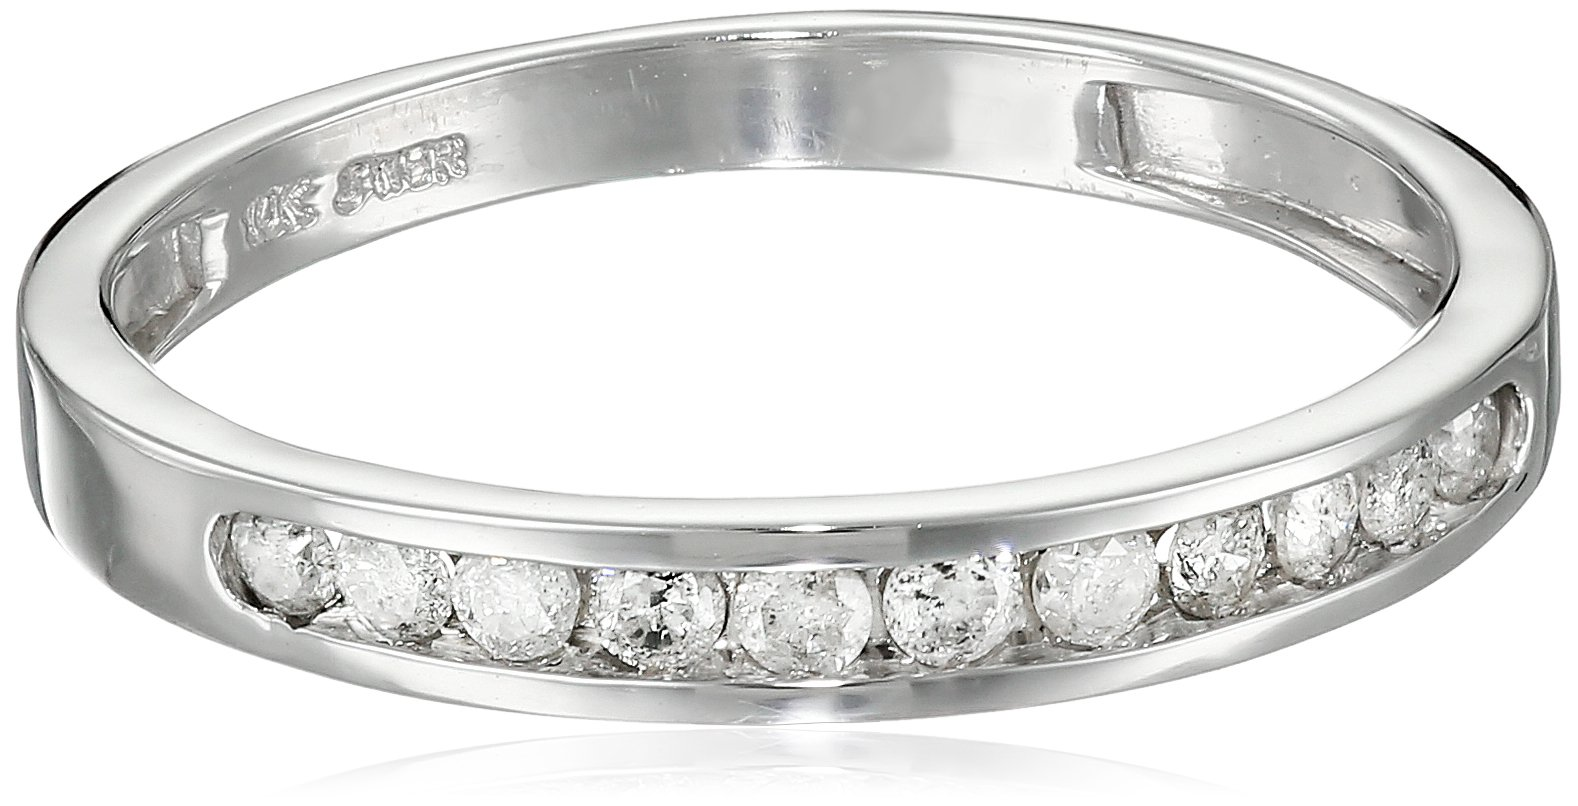 10K White Gold Round Diamond Stack Ring (1/4 cttw), Size 7 by Amazon Collection